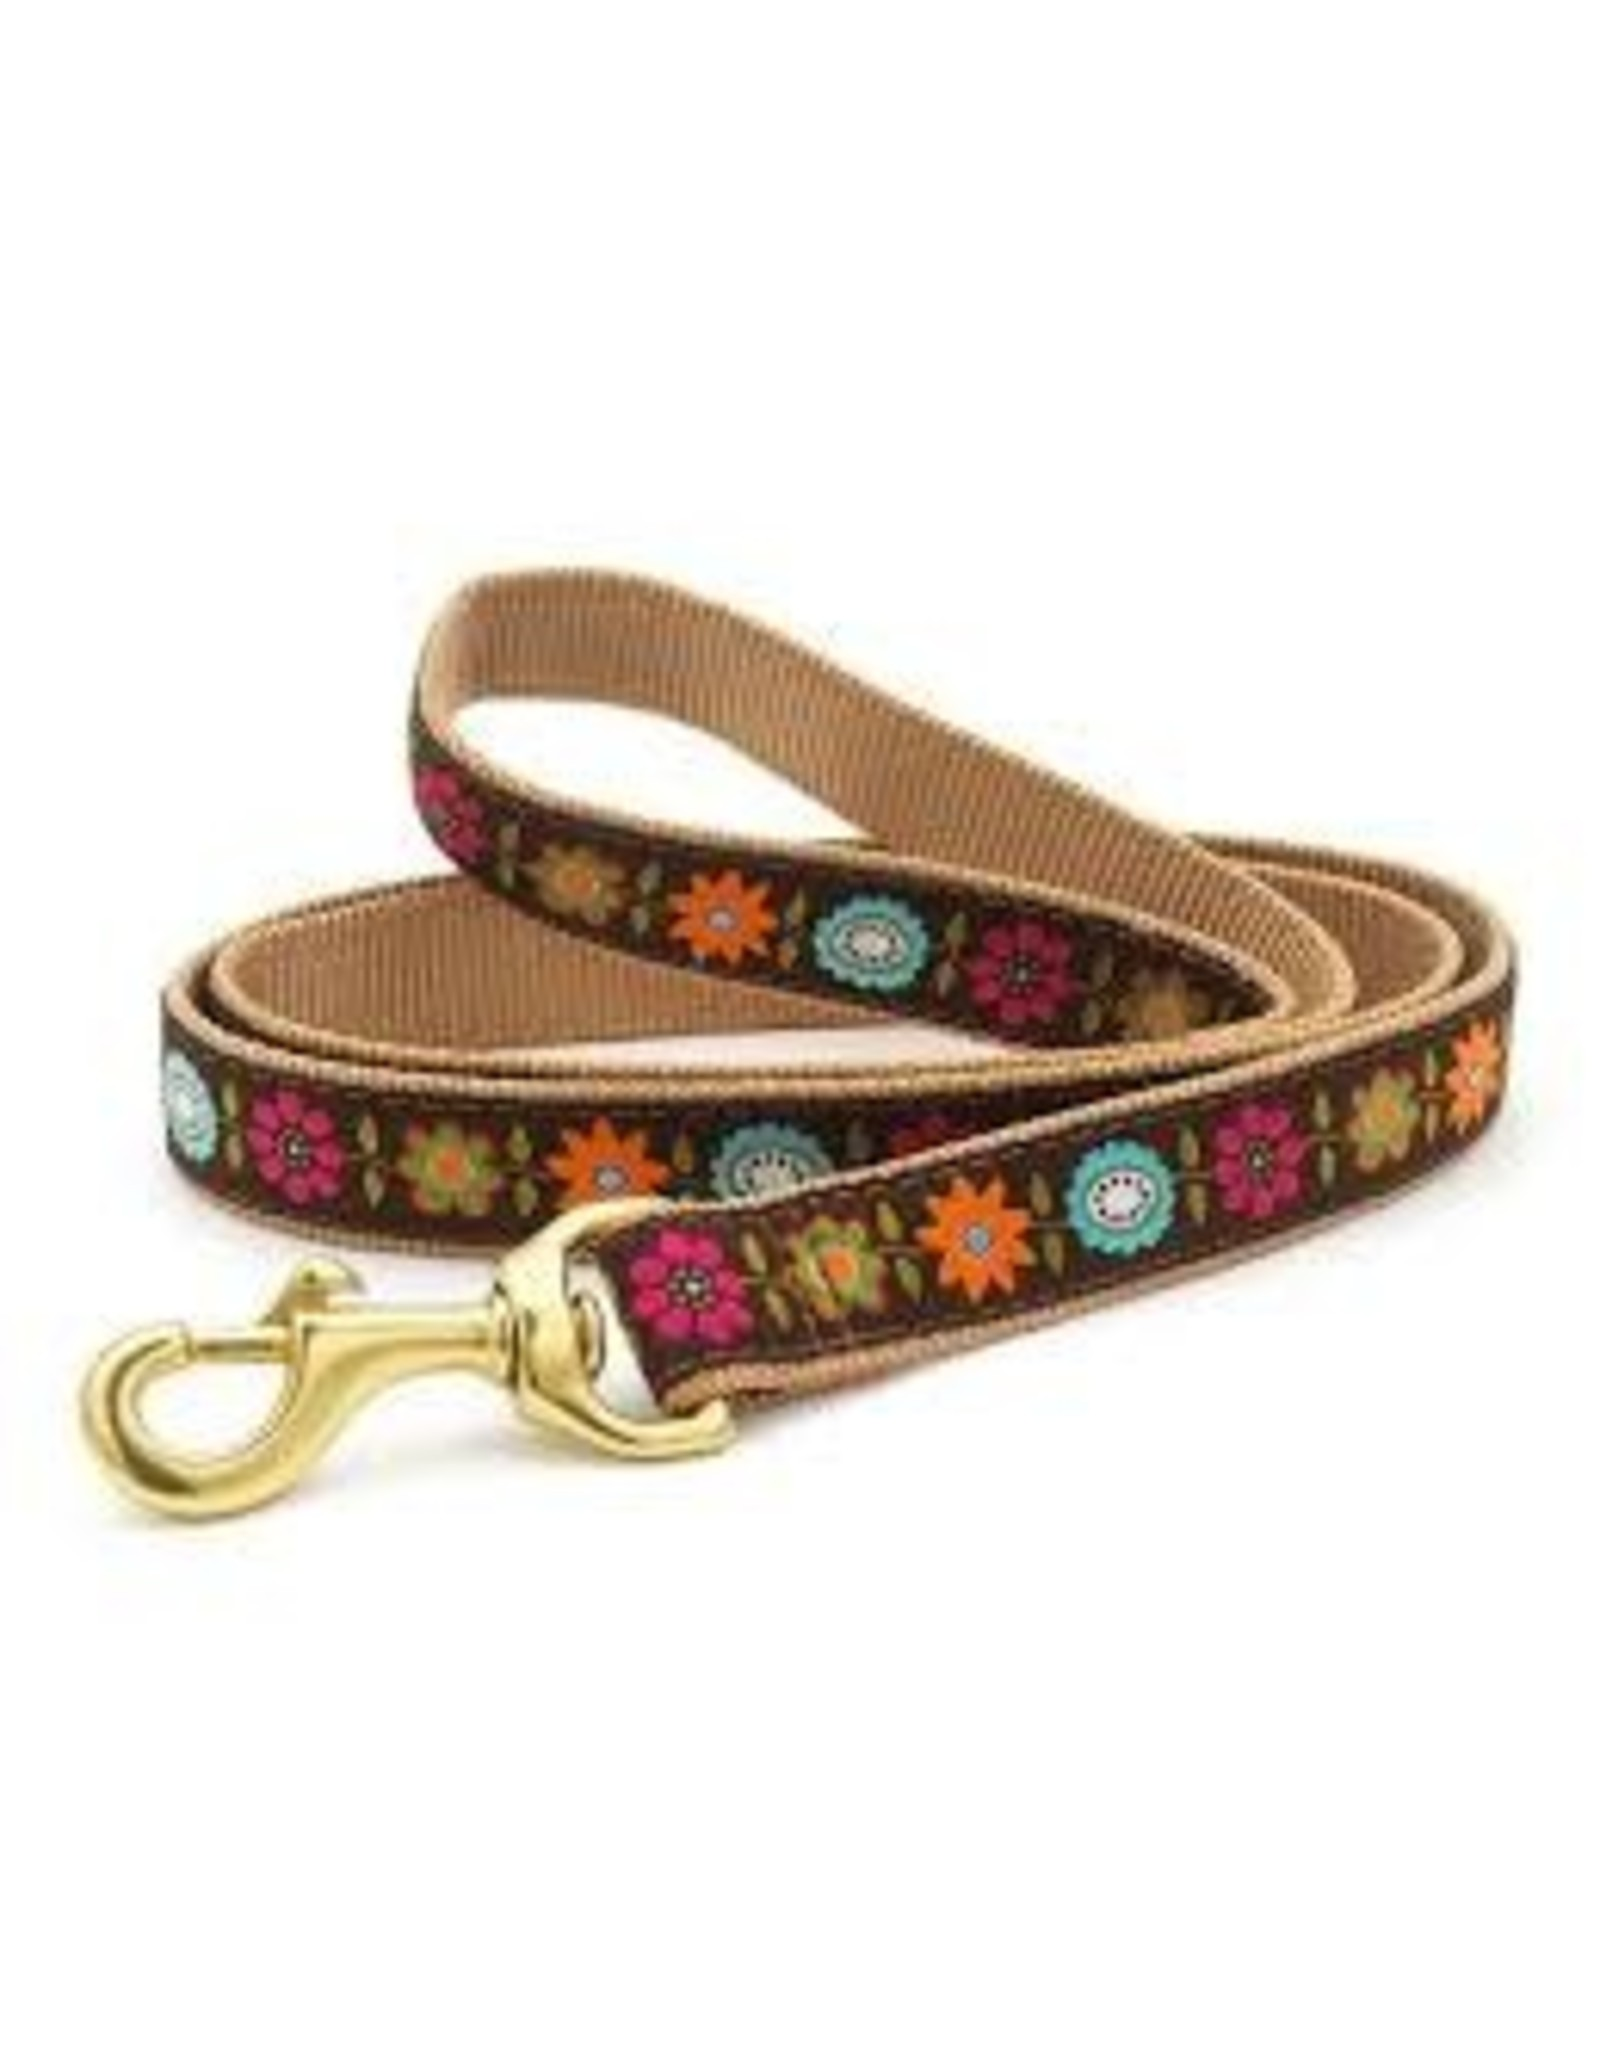 UP COUNTRY UP COUNTRY BELLA FLORAL DOG HARNESS L